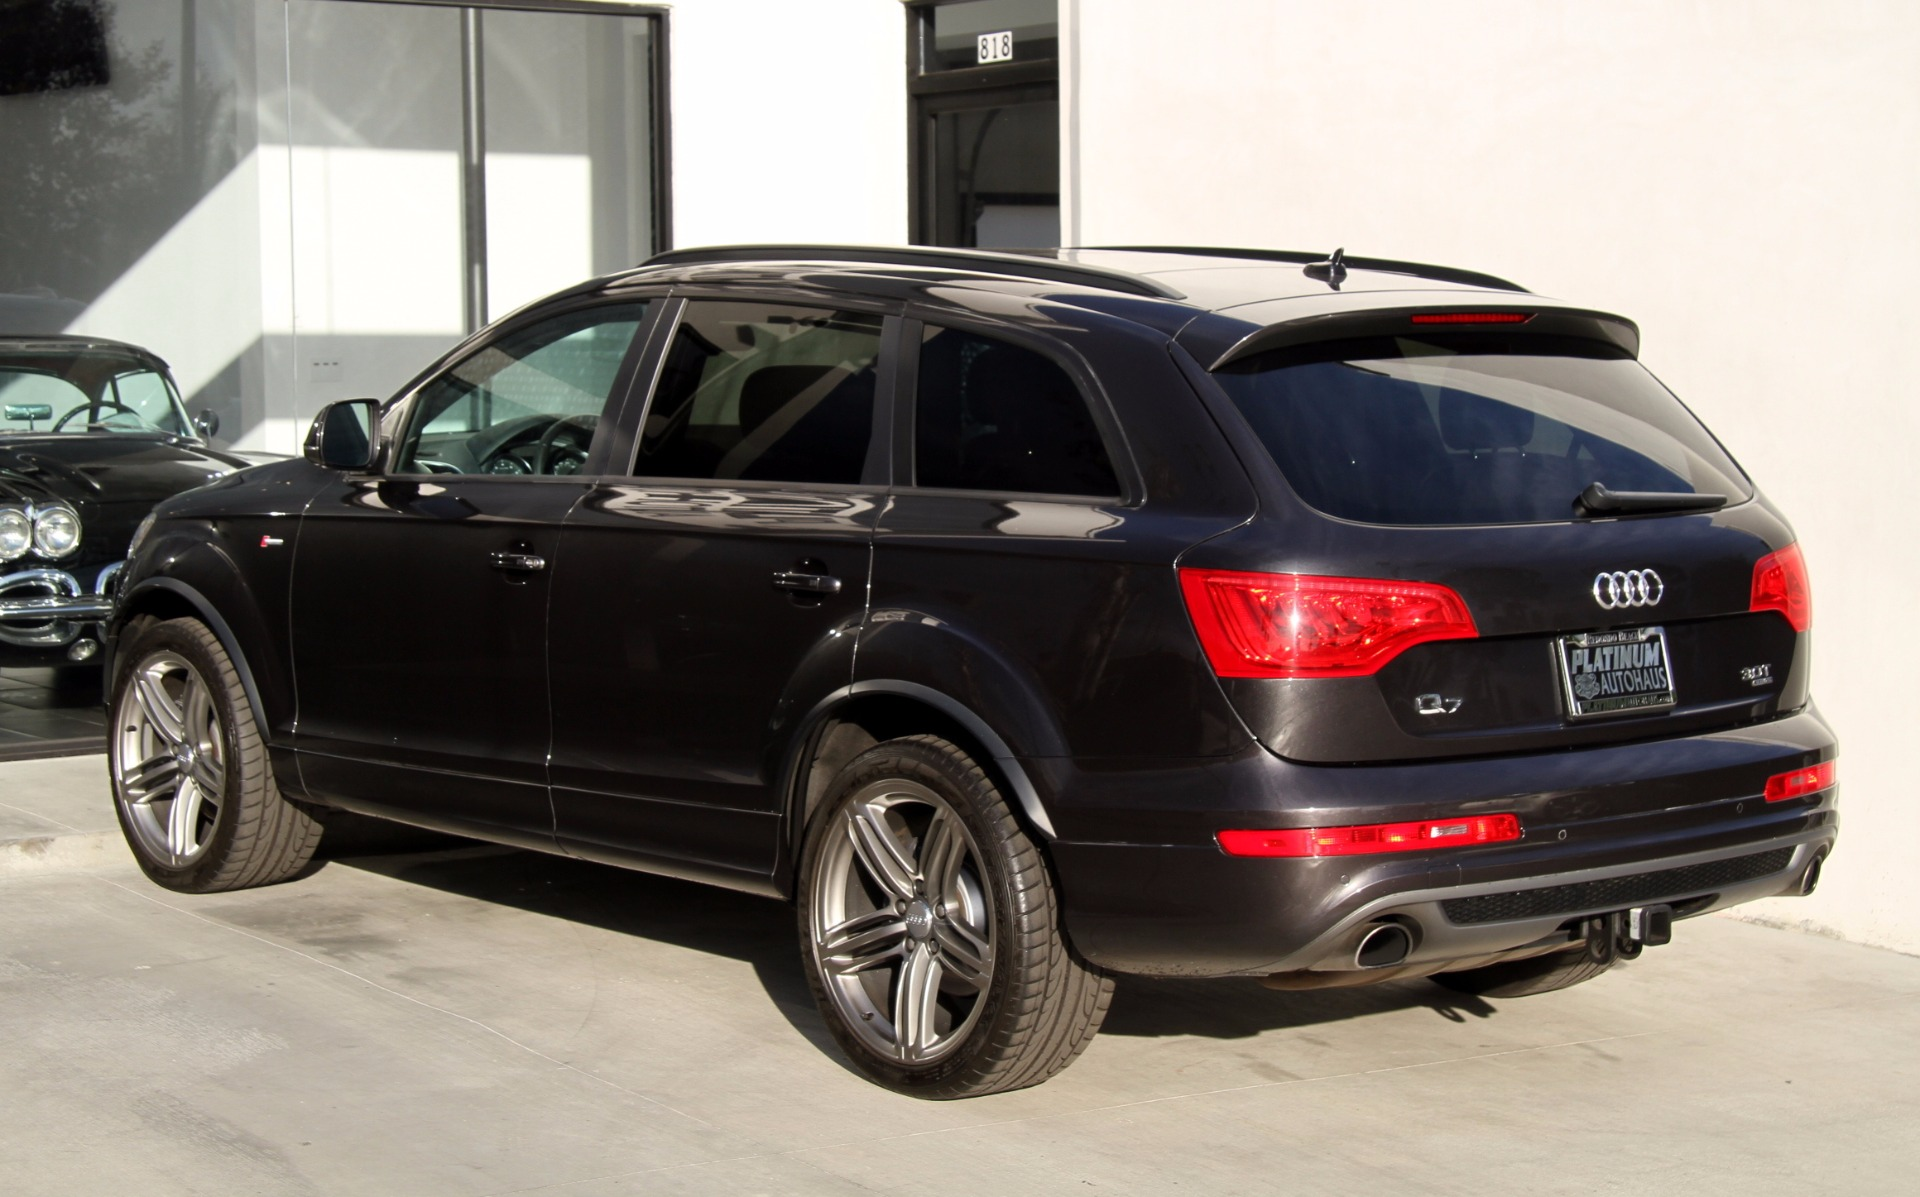 2014 audi q7 3 0t s line prestige stock 6010 for sale near redondo beach ca ca audi dealer. Black Bedroom Furniture Sets. Home Design Ideas